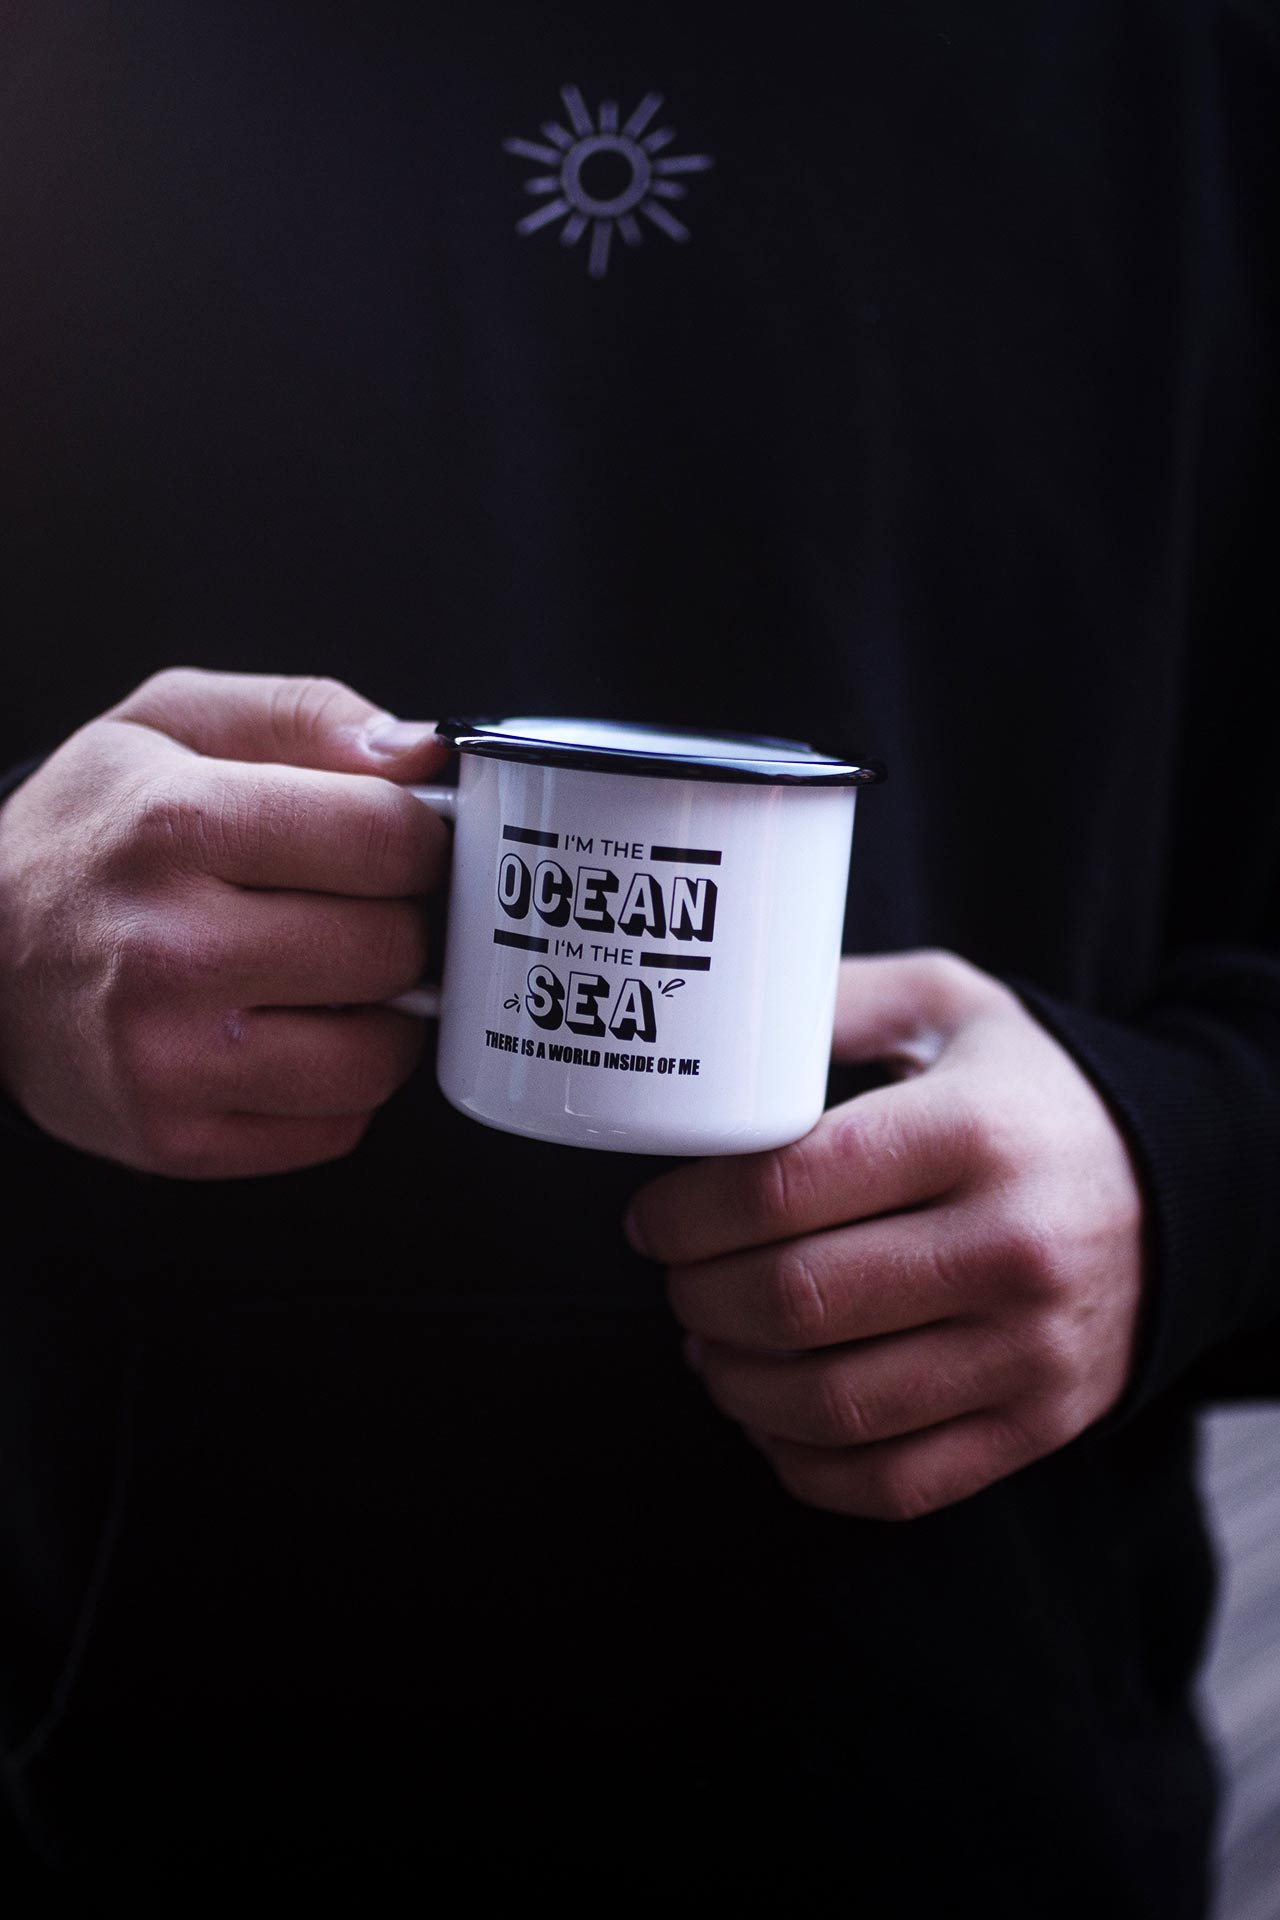 Emaille Tasse mit Spruch - i'm the ocean, i'm the sea, there is a world inside of me - gehalten in Hand.